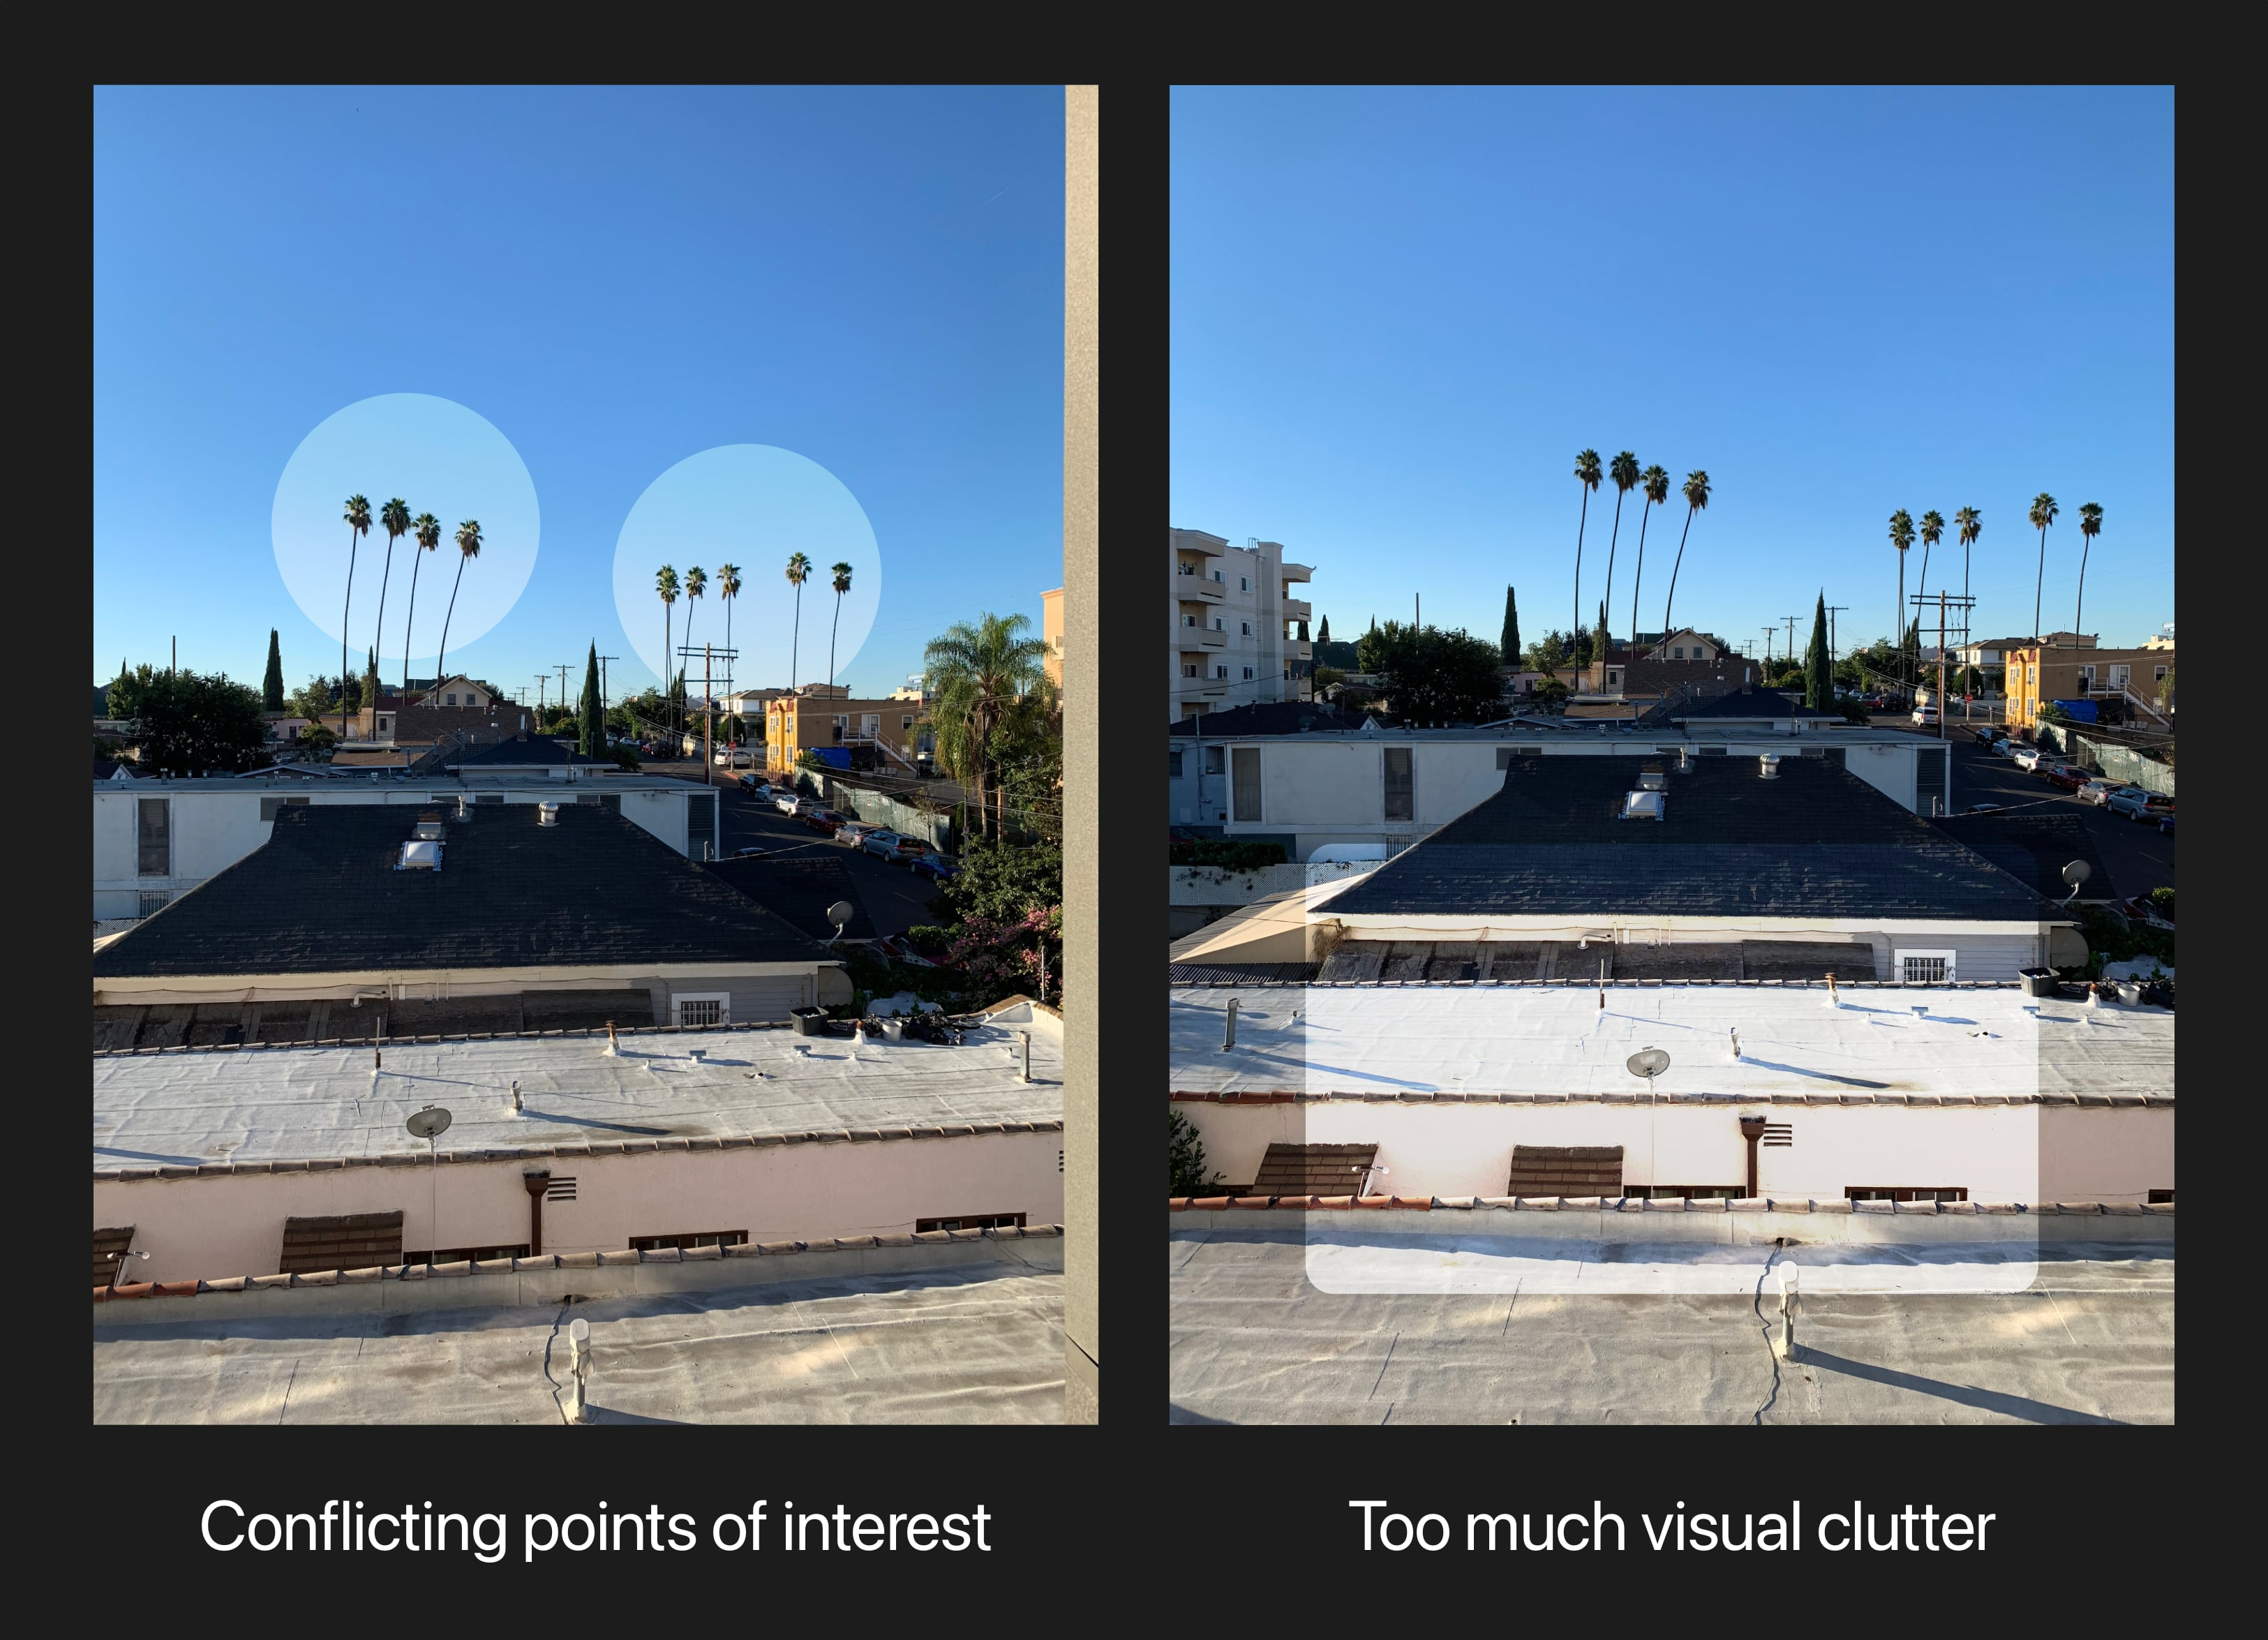 Conflicting points of interest; Too much visual clutter